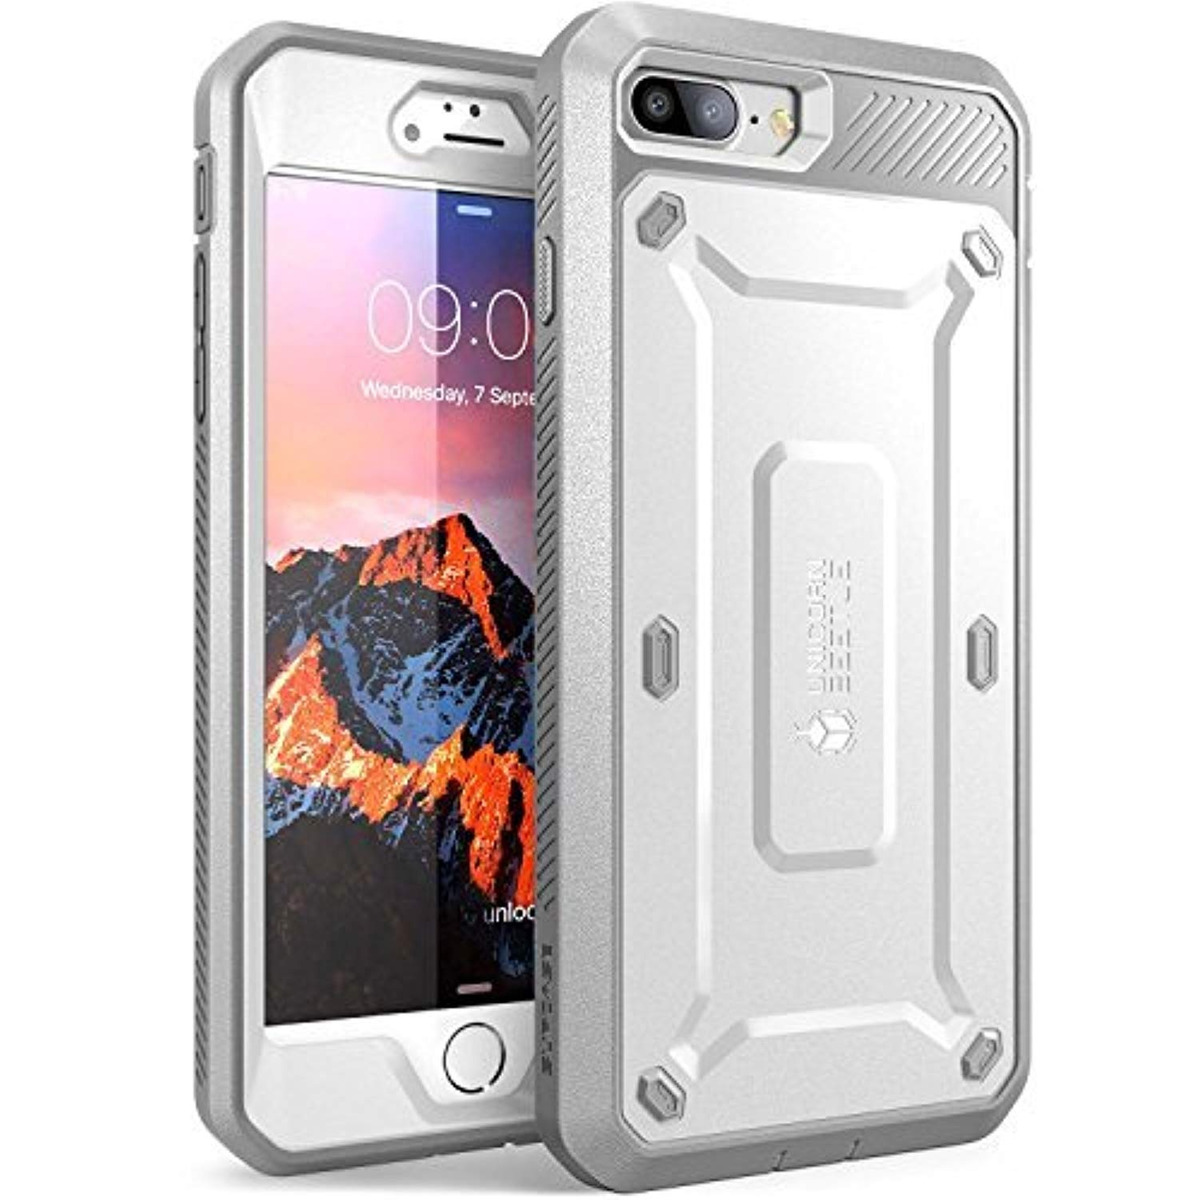 2ec682d85f2 Funda iPhone Protectora Supcase Para iPhone 7 Plus - $ 1,580.95 en ...